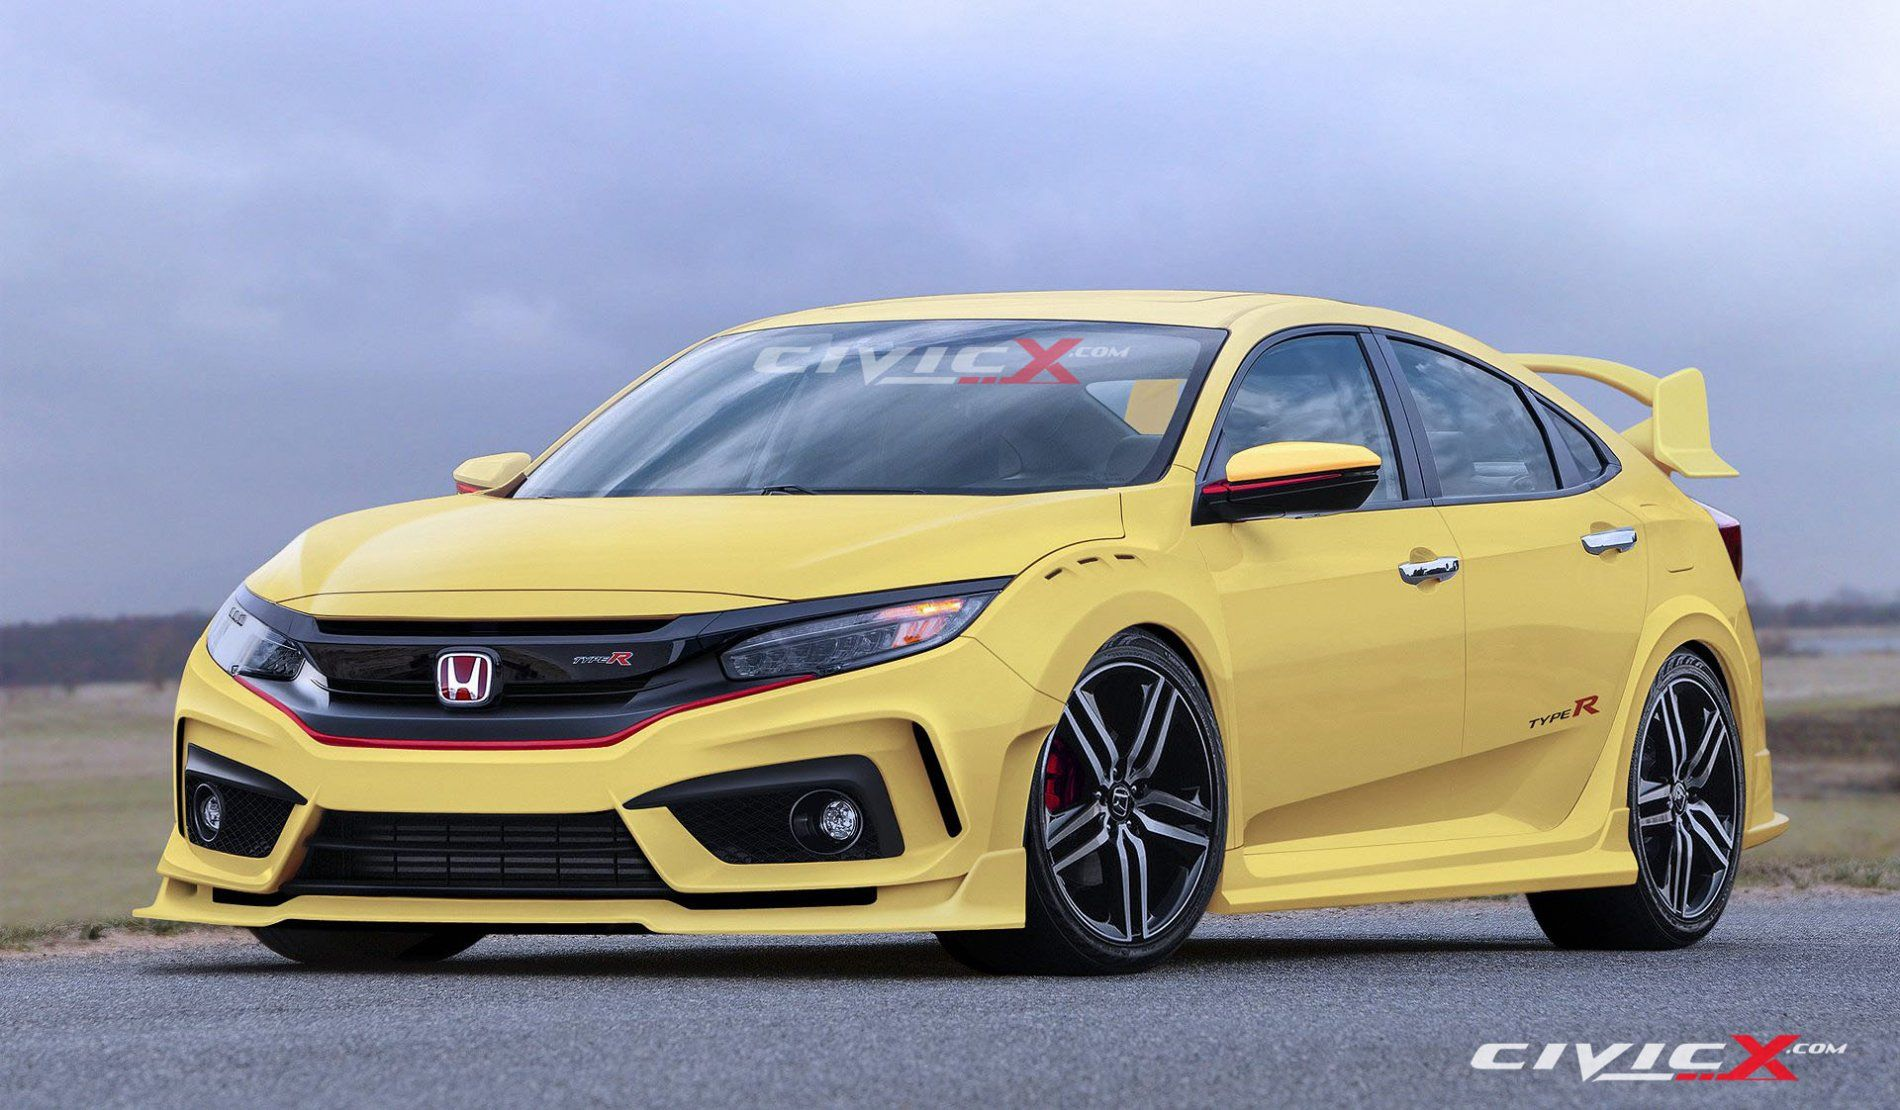 The Newly Rendered 2017 Honda Civic Typer